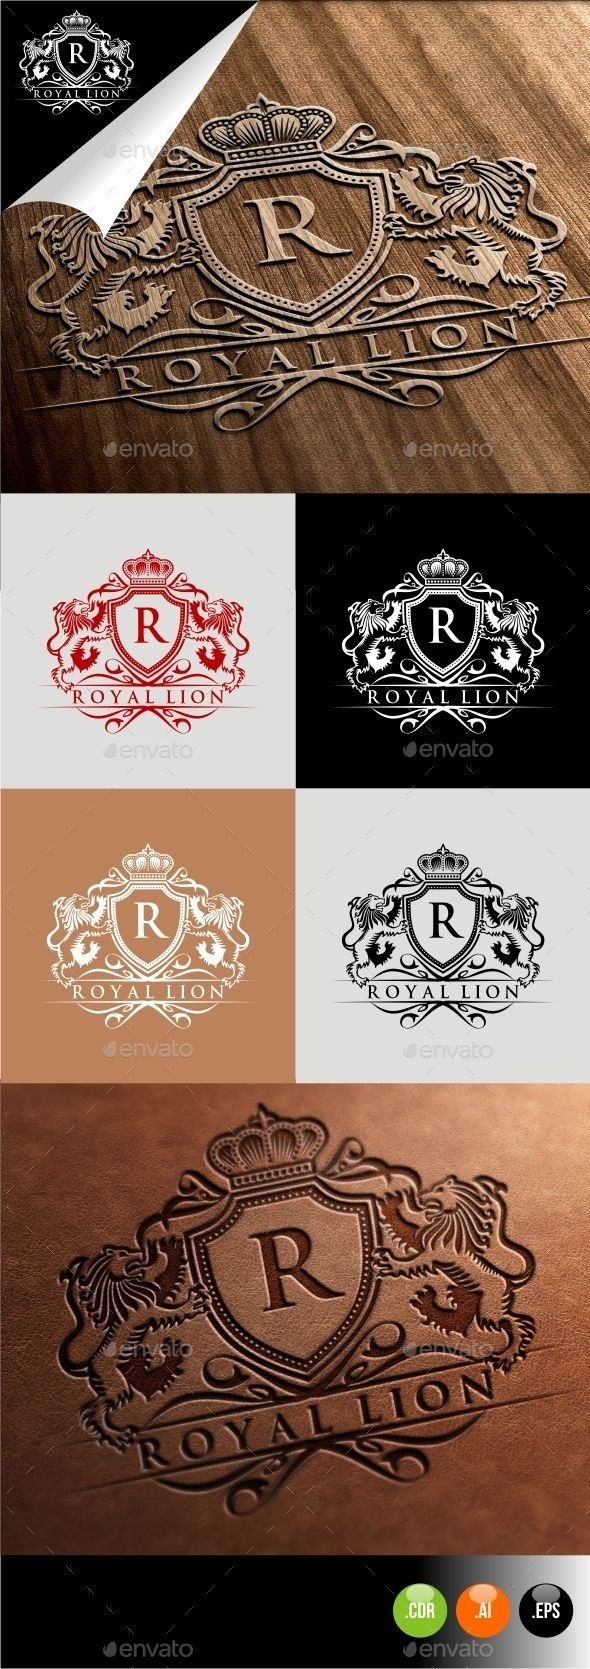 Royal Lion — Vector EPS #royal lion #royal brand • Download here → https://graphicriver.net/item/royal-lion/10262409?ref=pxcr